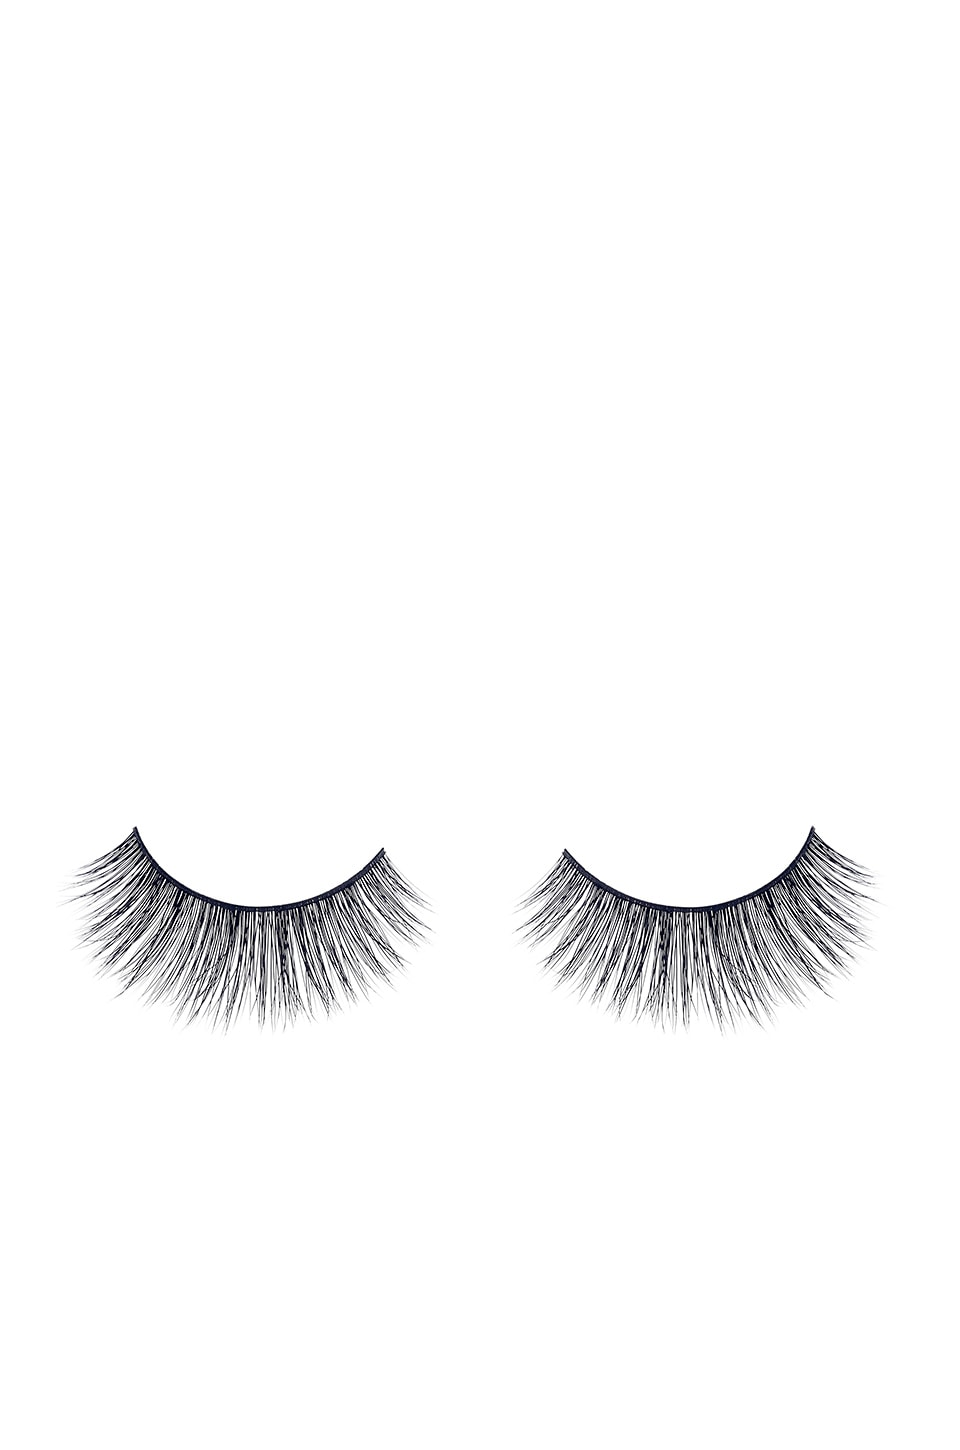 Artemes Lash Take A Moment Mink Eyelashes in Black